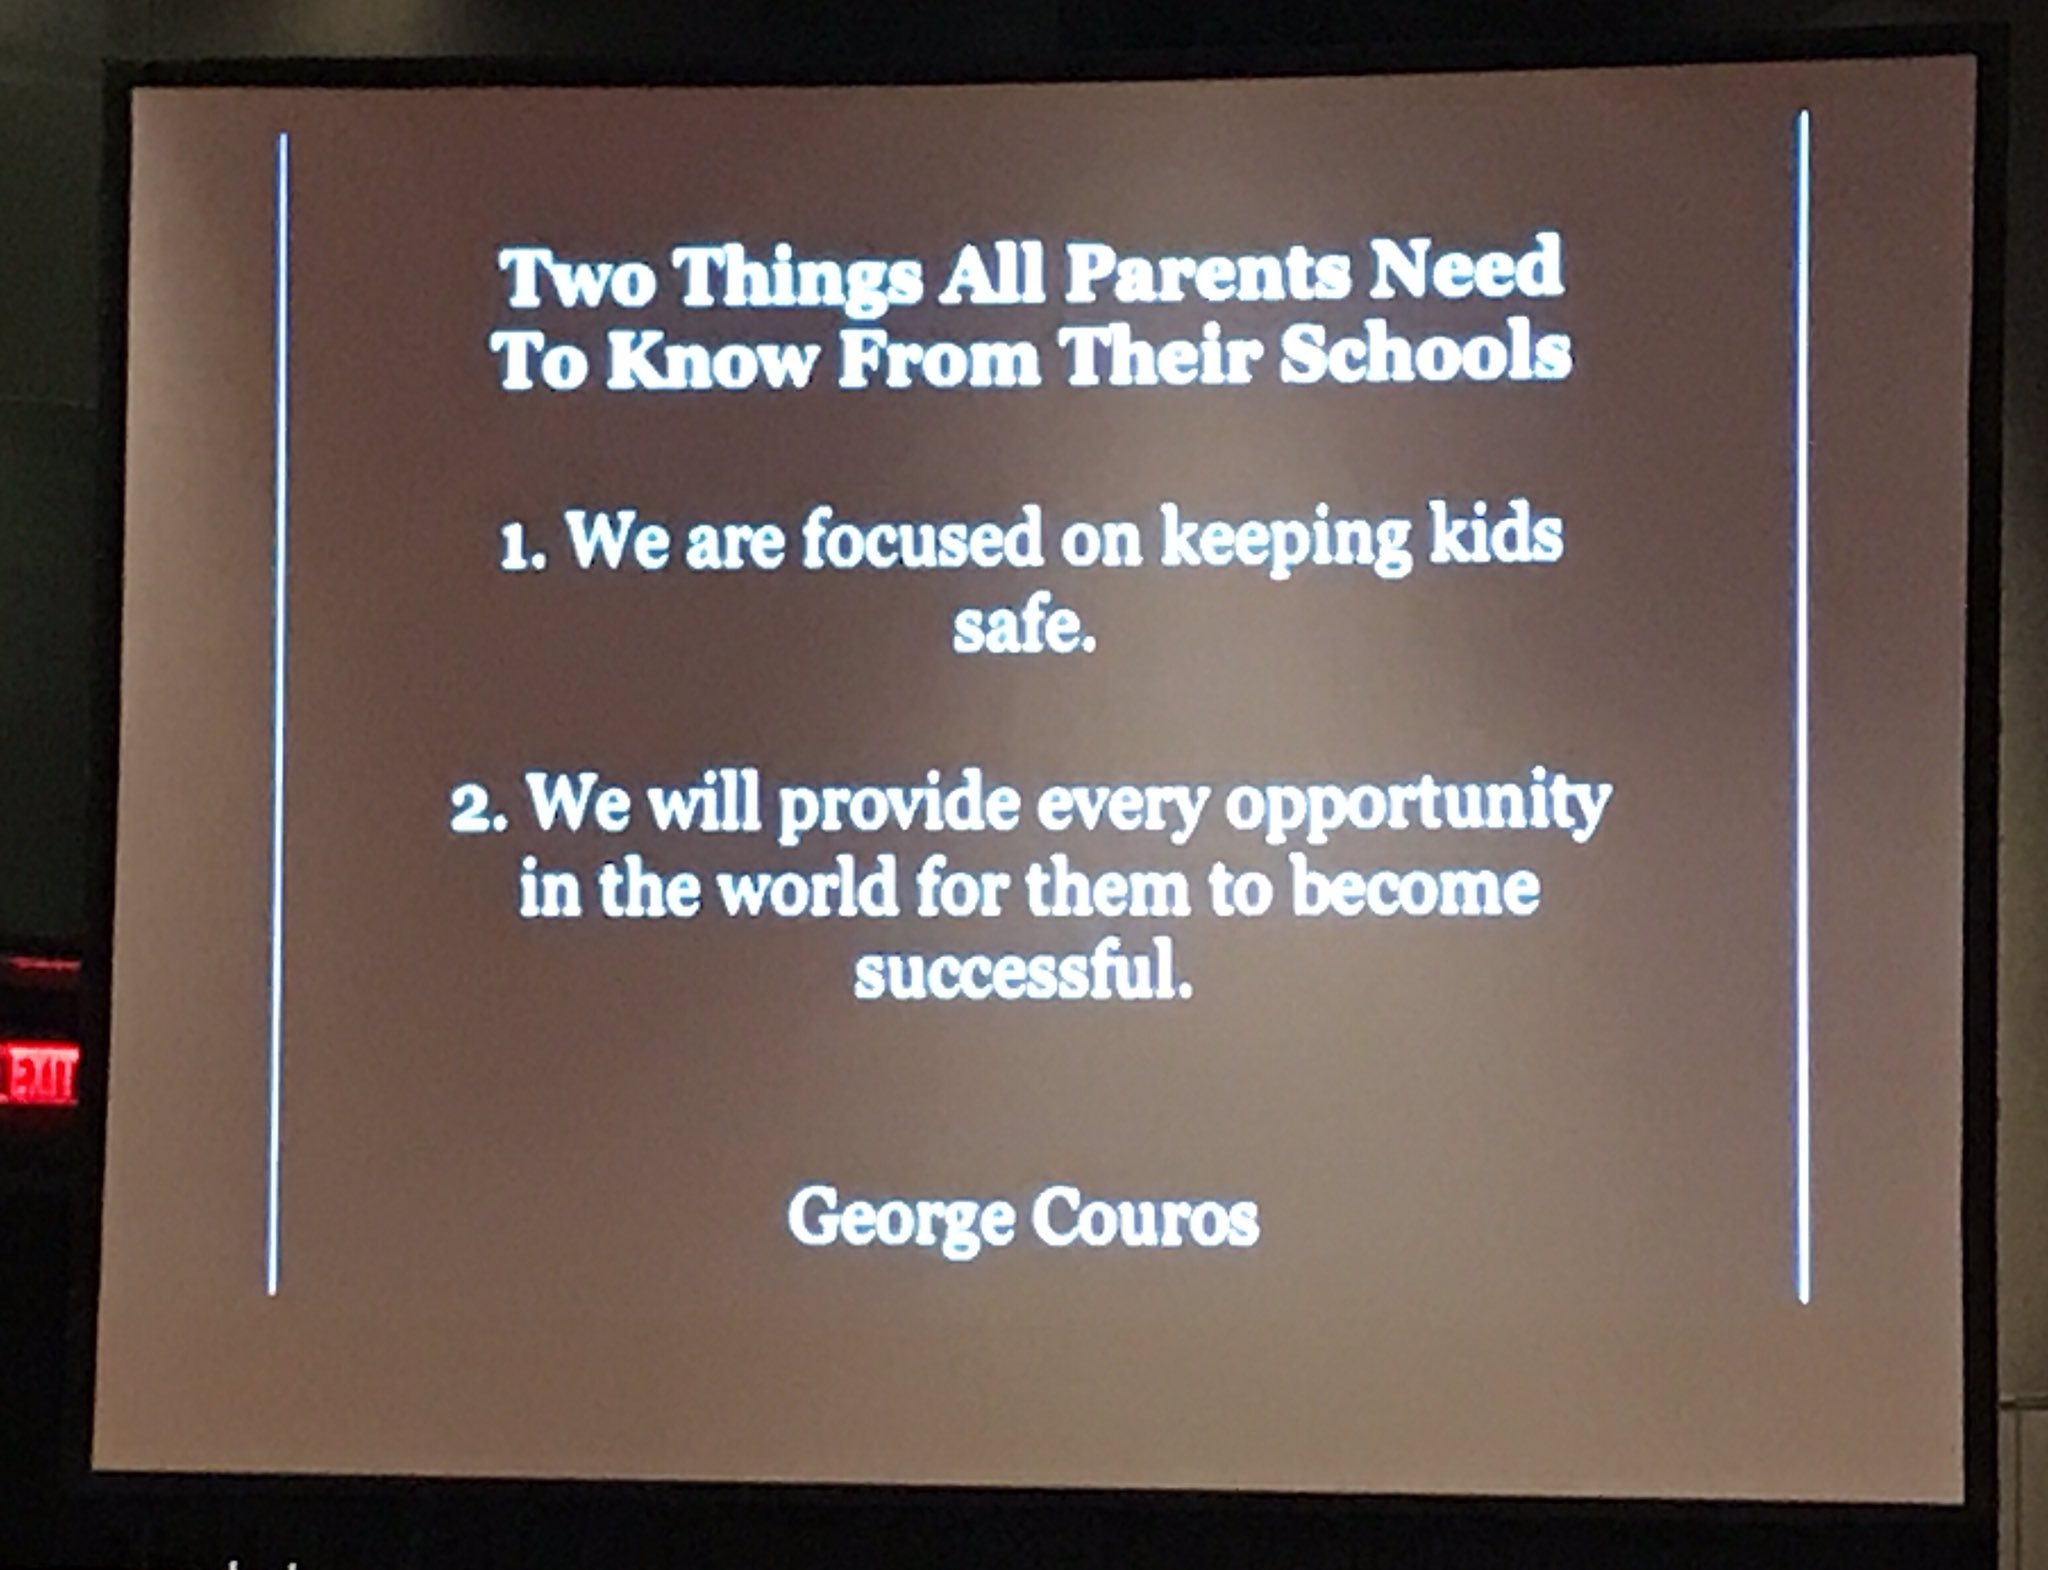 This is what I say to our Ss' parents.  Don't we want to hear this from our schools?  #iste17gc #ISTE17 @gcouros https://t.co/M9ee6UZmQw